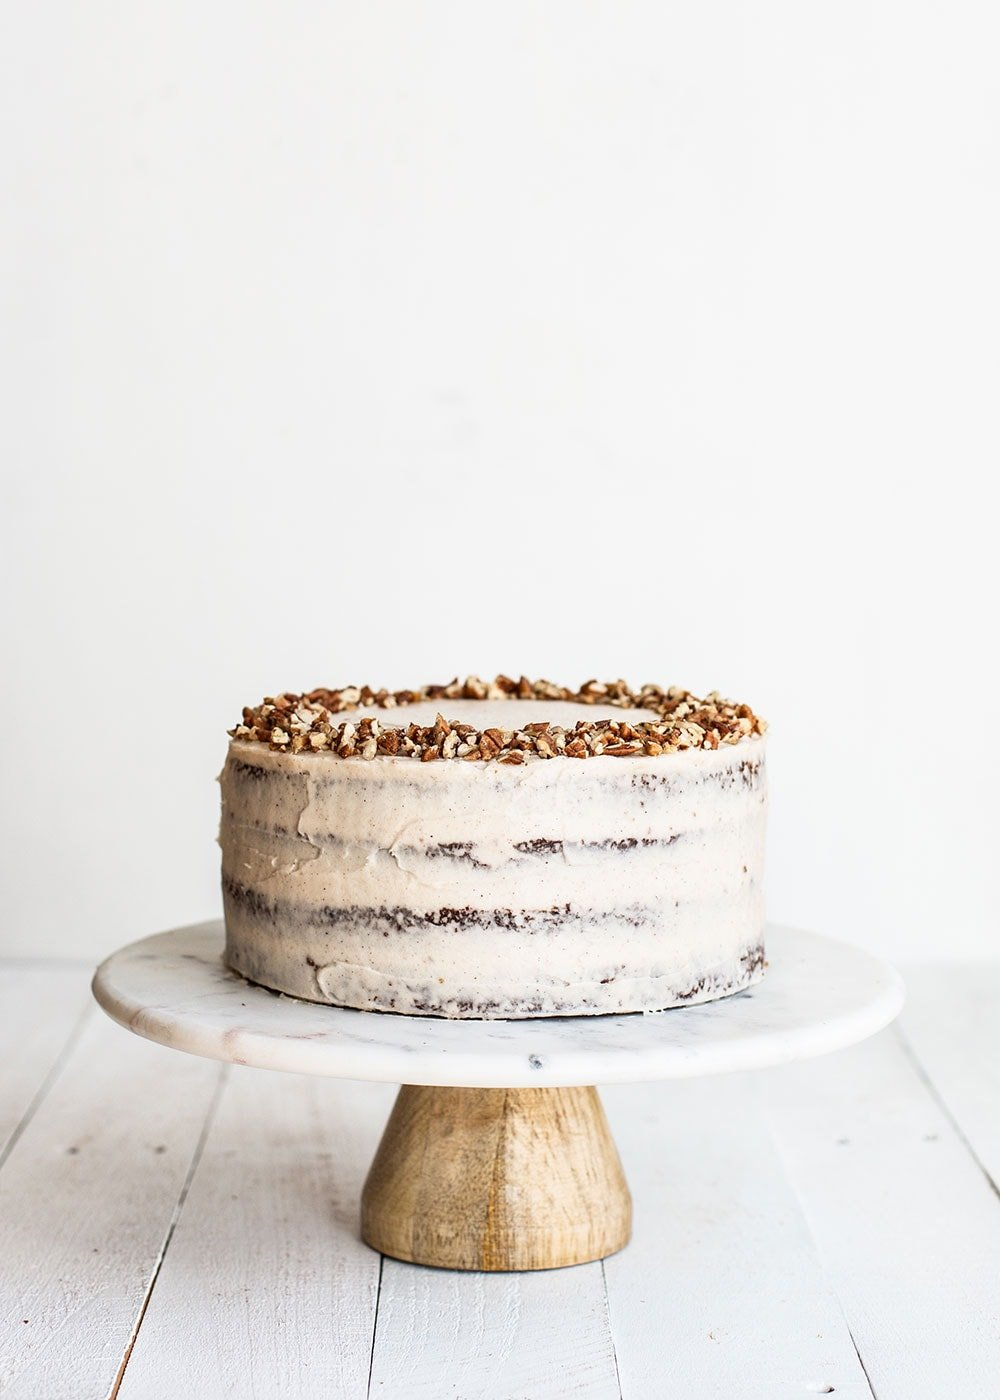 Four layer brown butter carrot cake on a cake stand